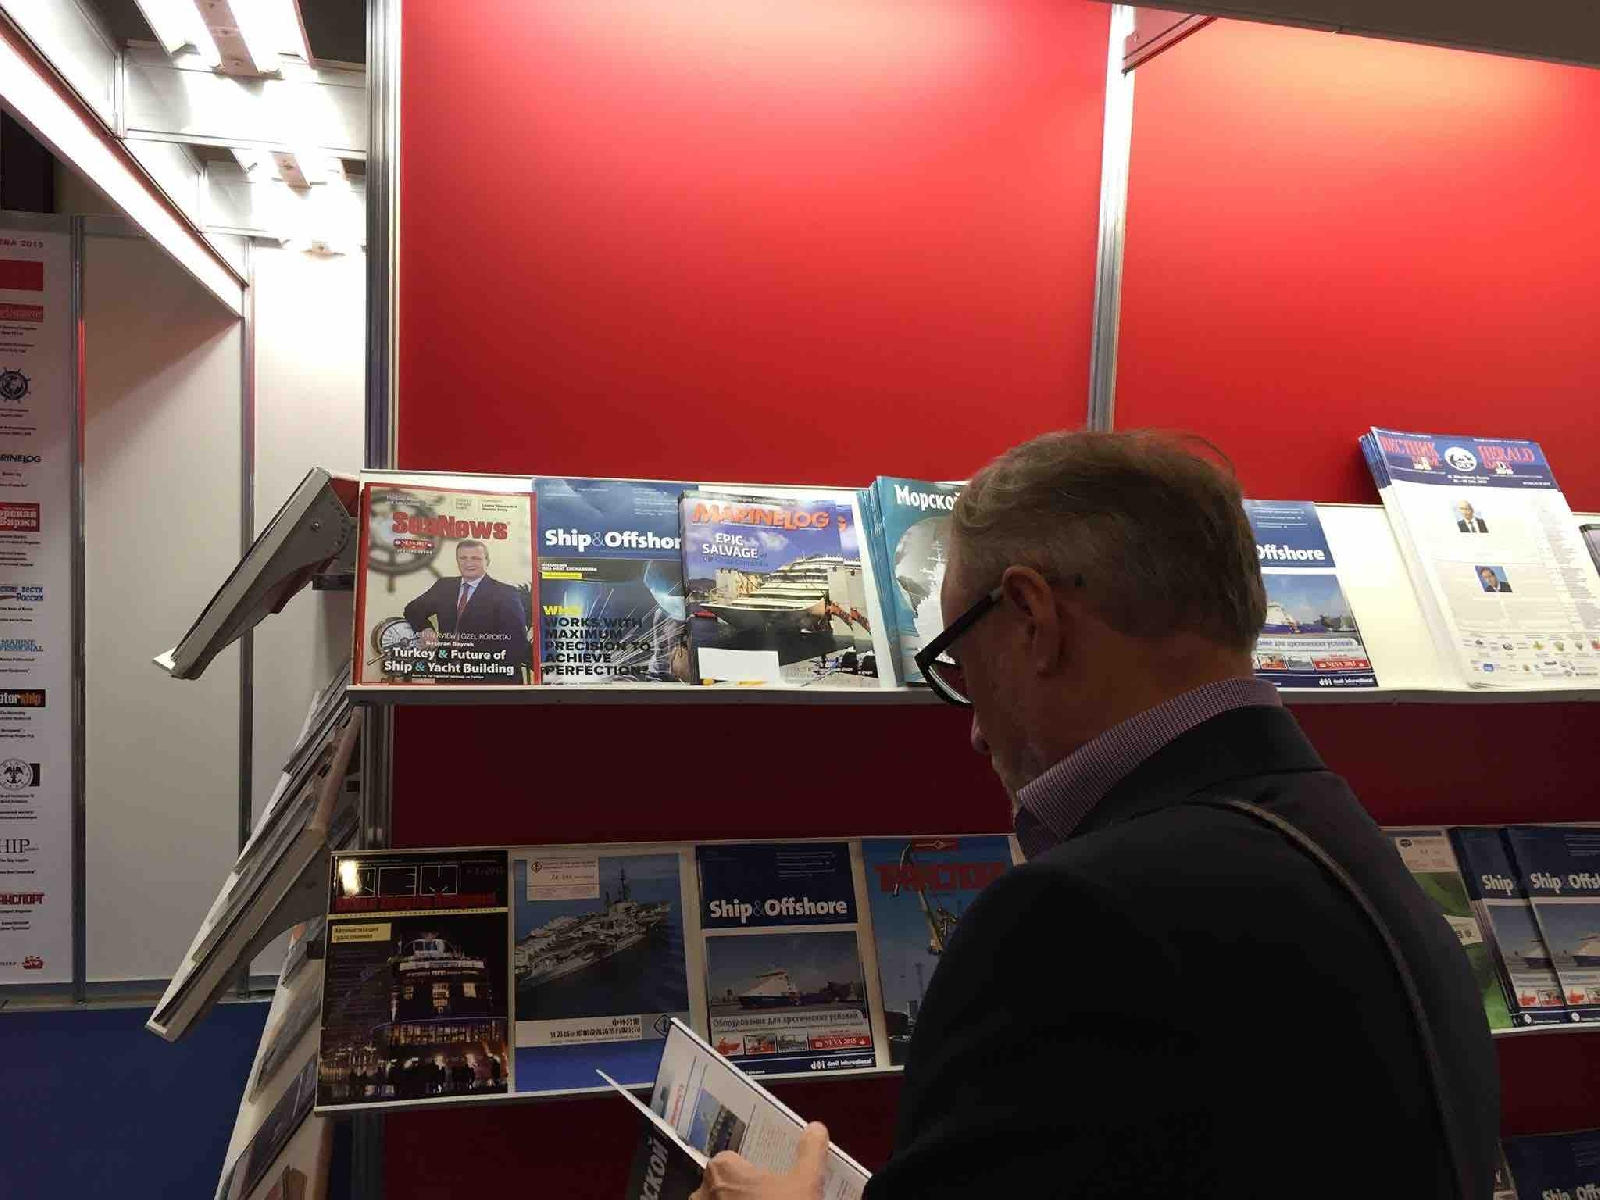 The NEVA shipping congress and exhibition has started at ExpoForum center, St. Petersburg